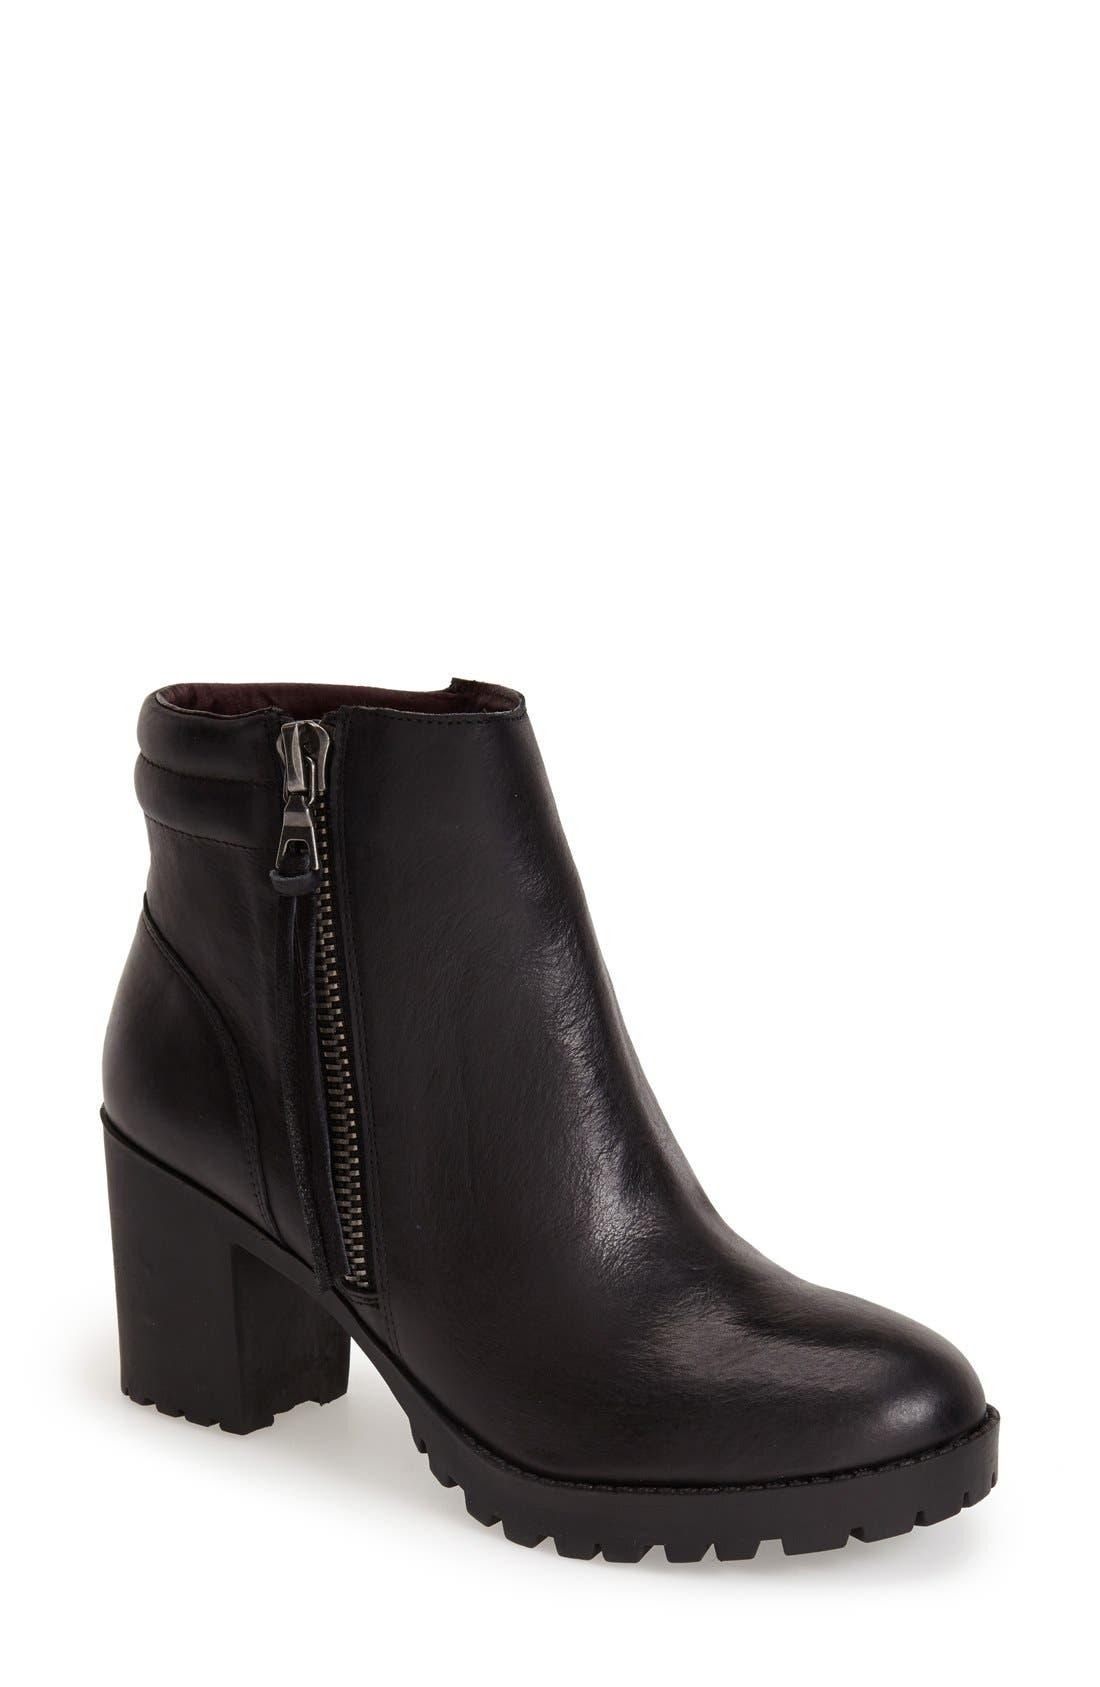 STEVE MADDEN, 'Norwayy' Bootie, Main thumbnail 1, color, 001